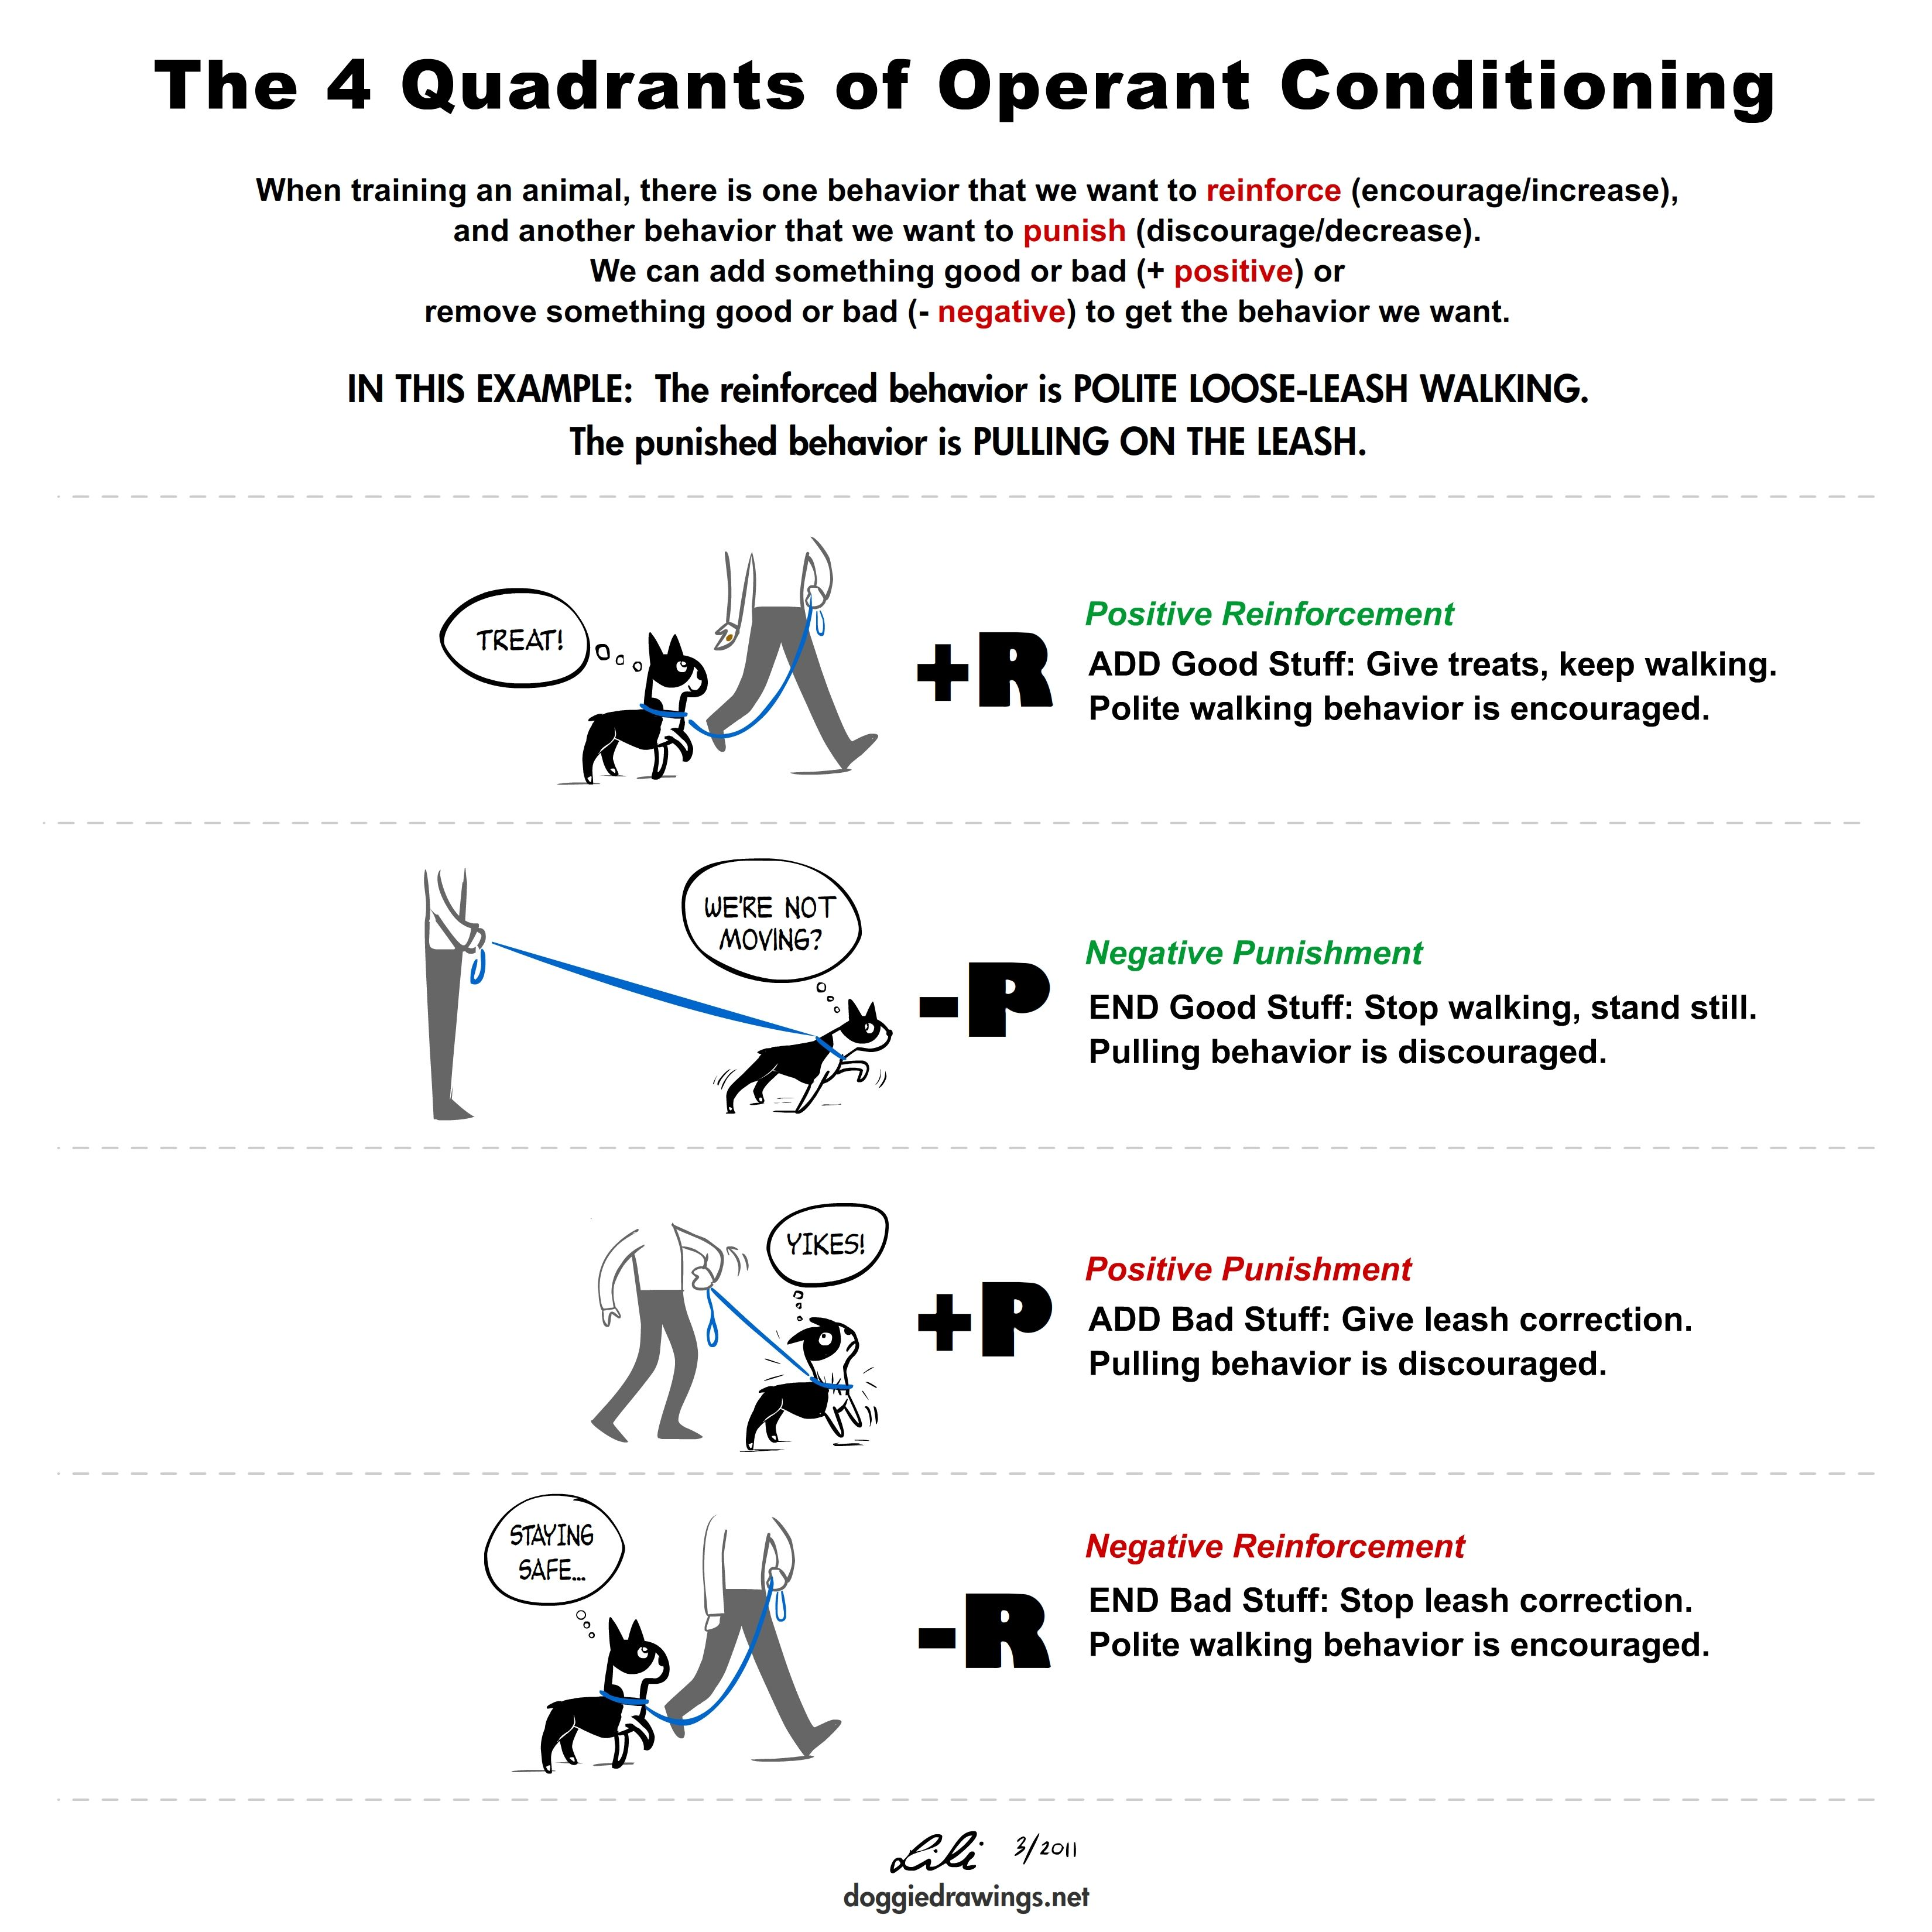 Pin By Yell Kall On Dog Tips Operant Conditioning Dog Training Dog Training Tips